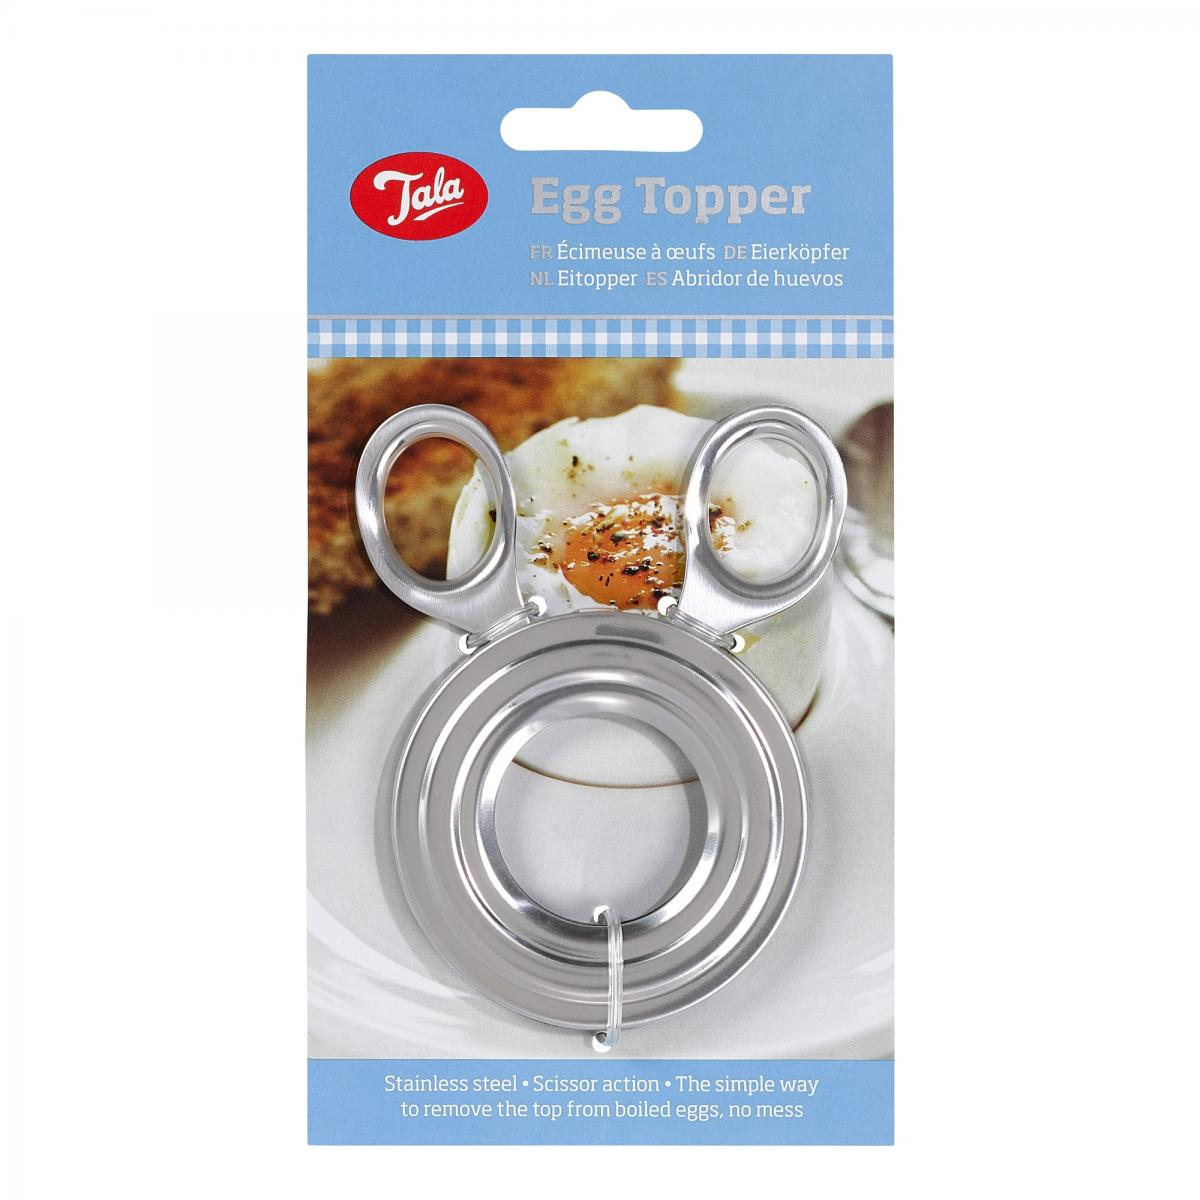 Stainless Steel Egg Topper – Now Only £2.50